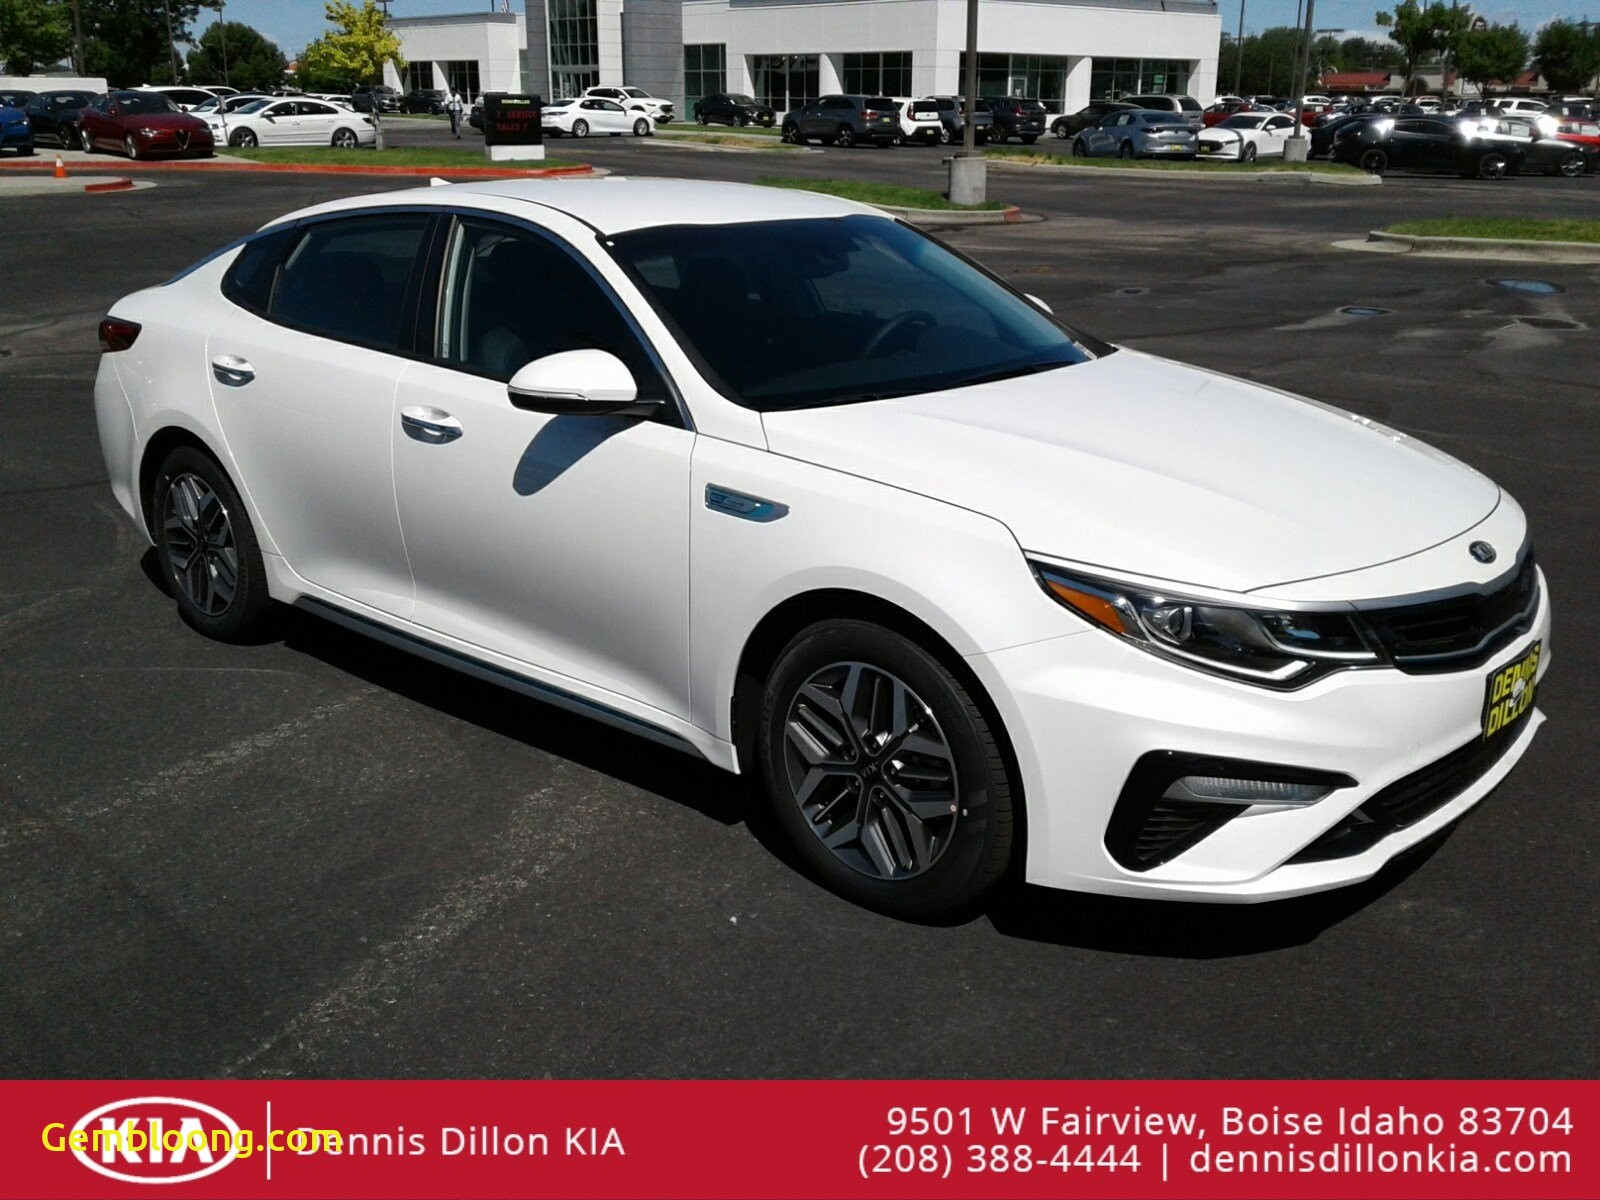 Cars for Sale Near Me Hybrid Unique New 2020 Kia Optima Hybrid Ex Fwd 4dr Car